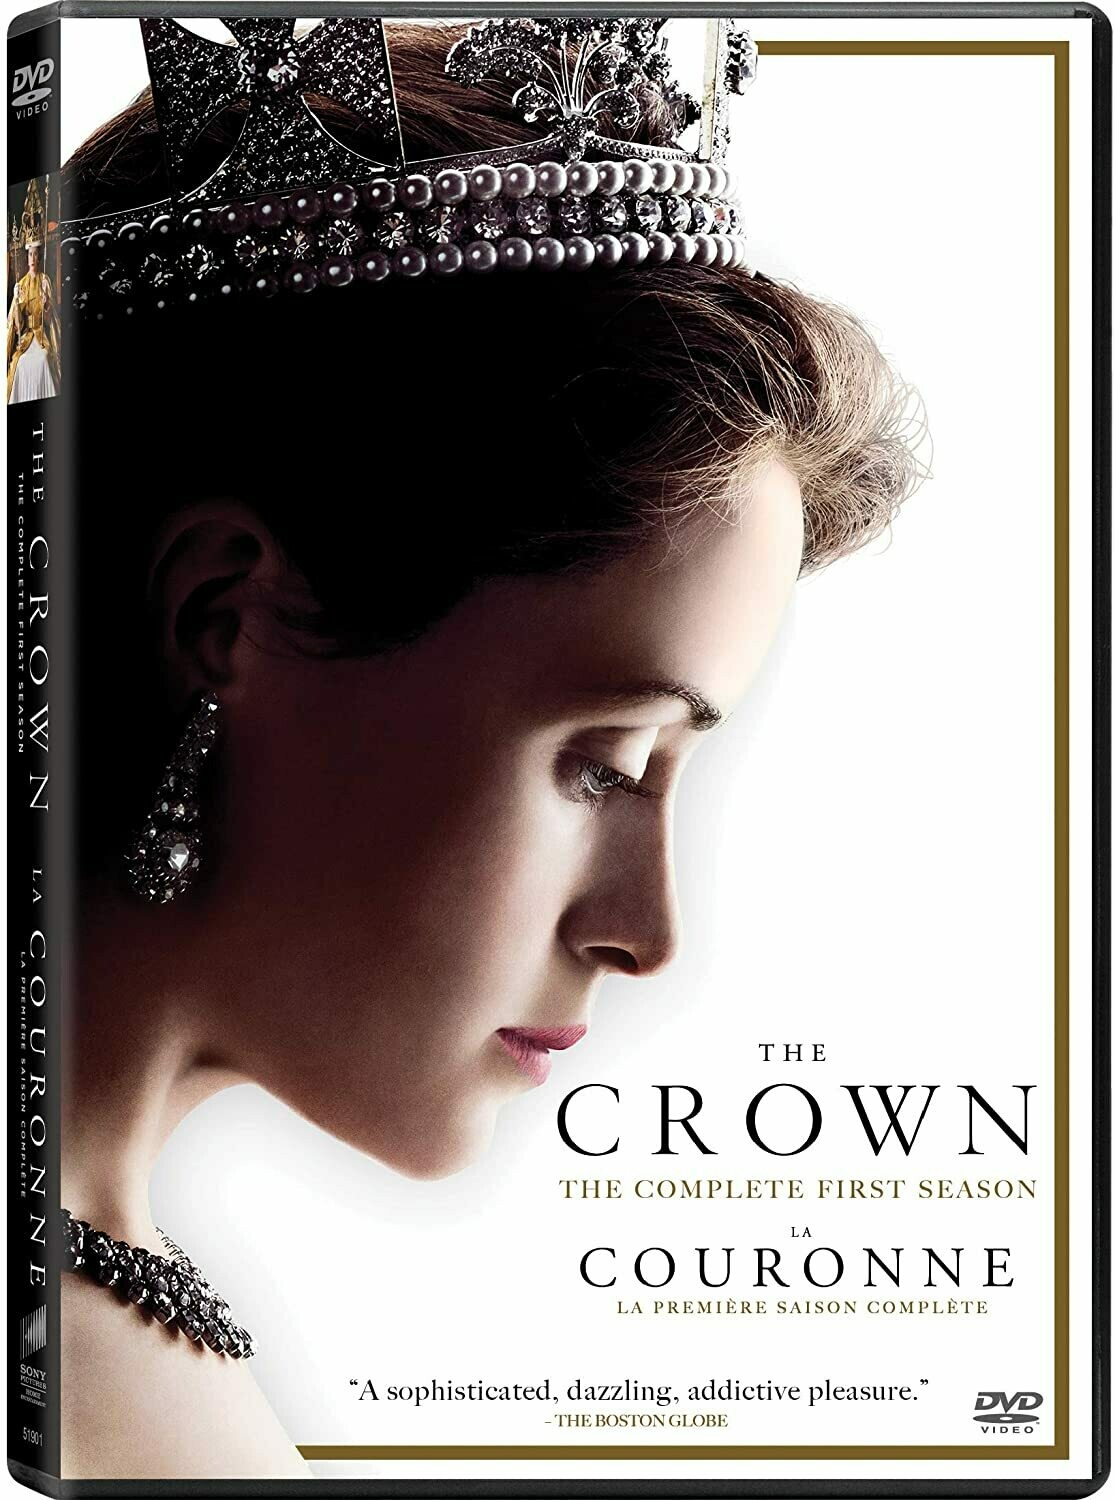 The Crown Season One (7 day rental)